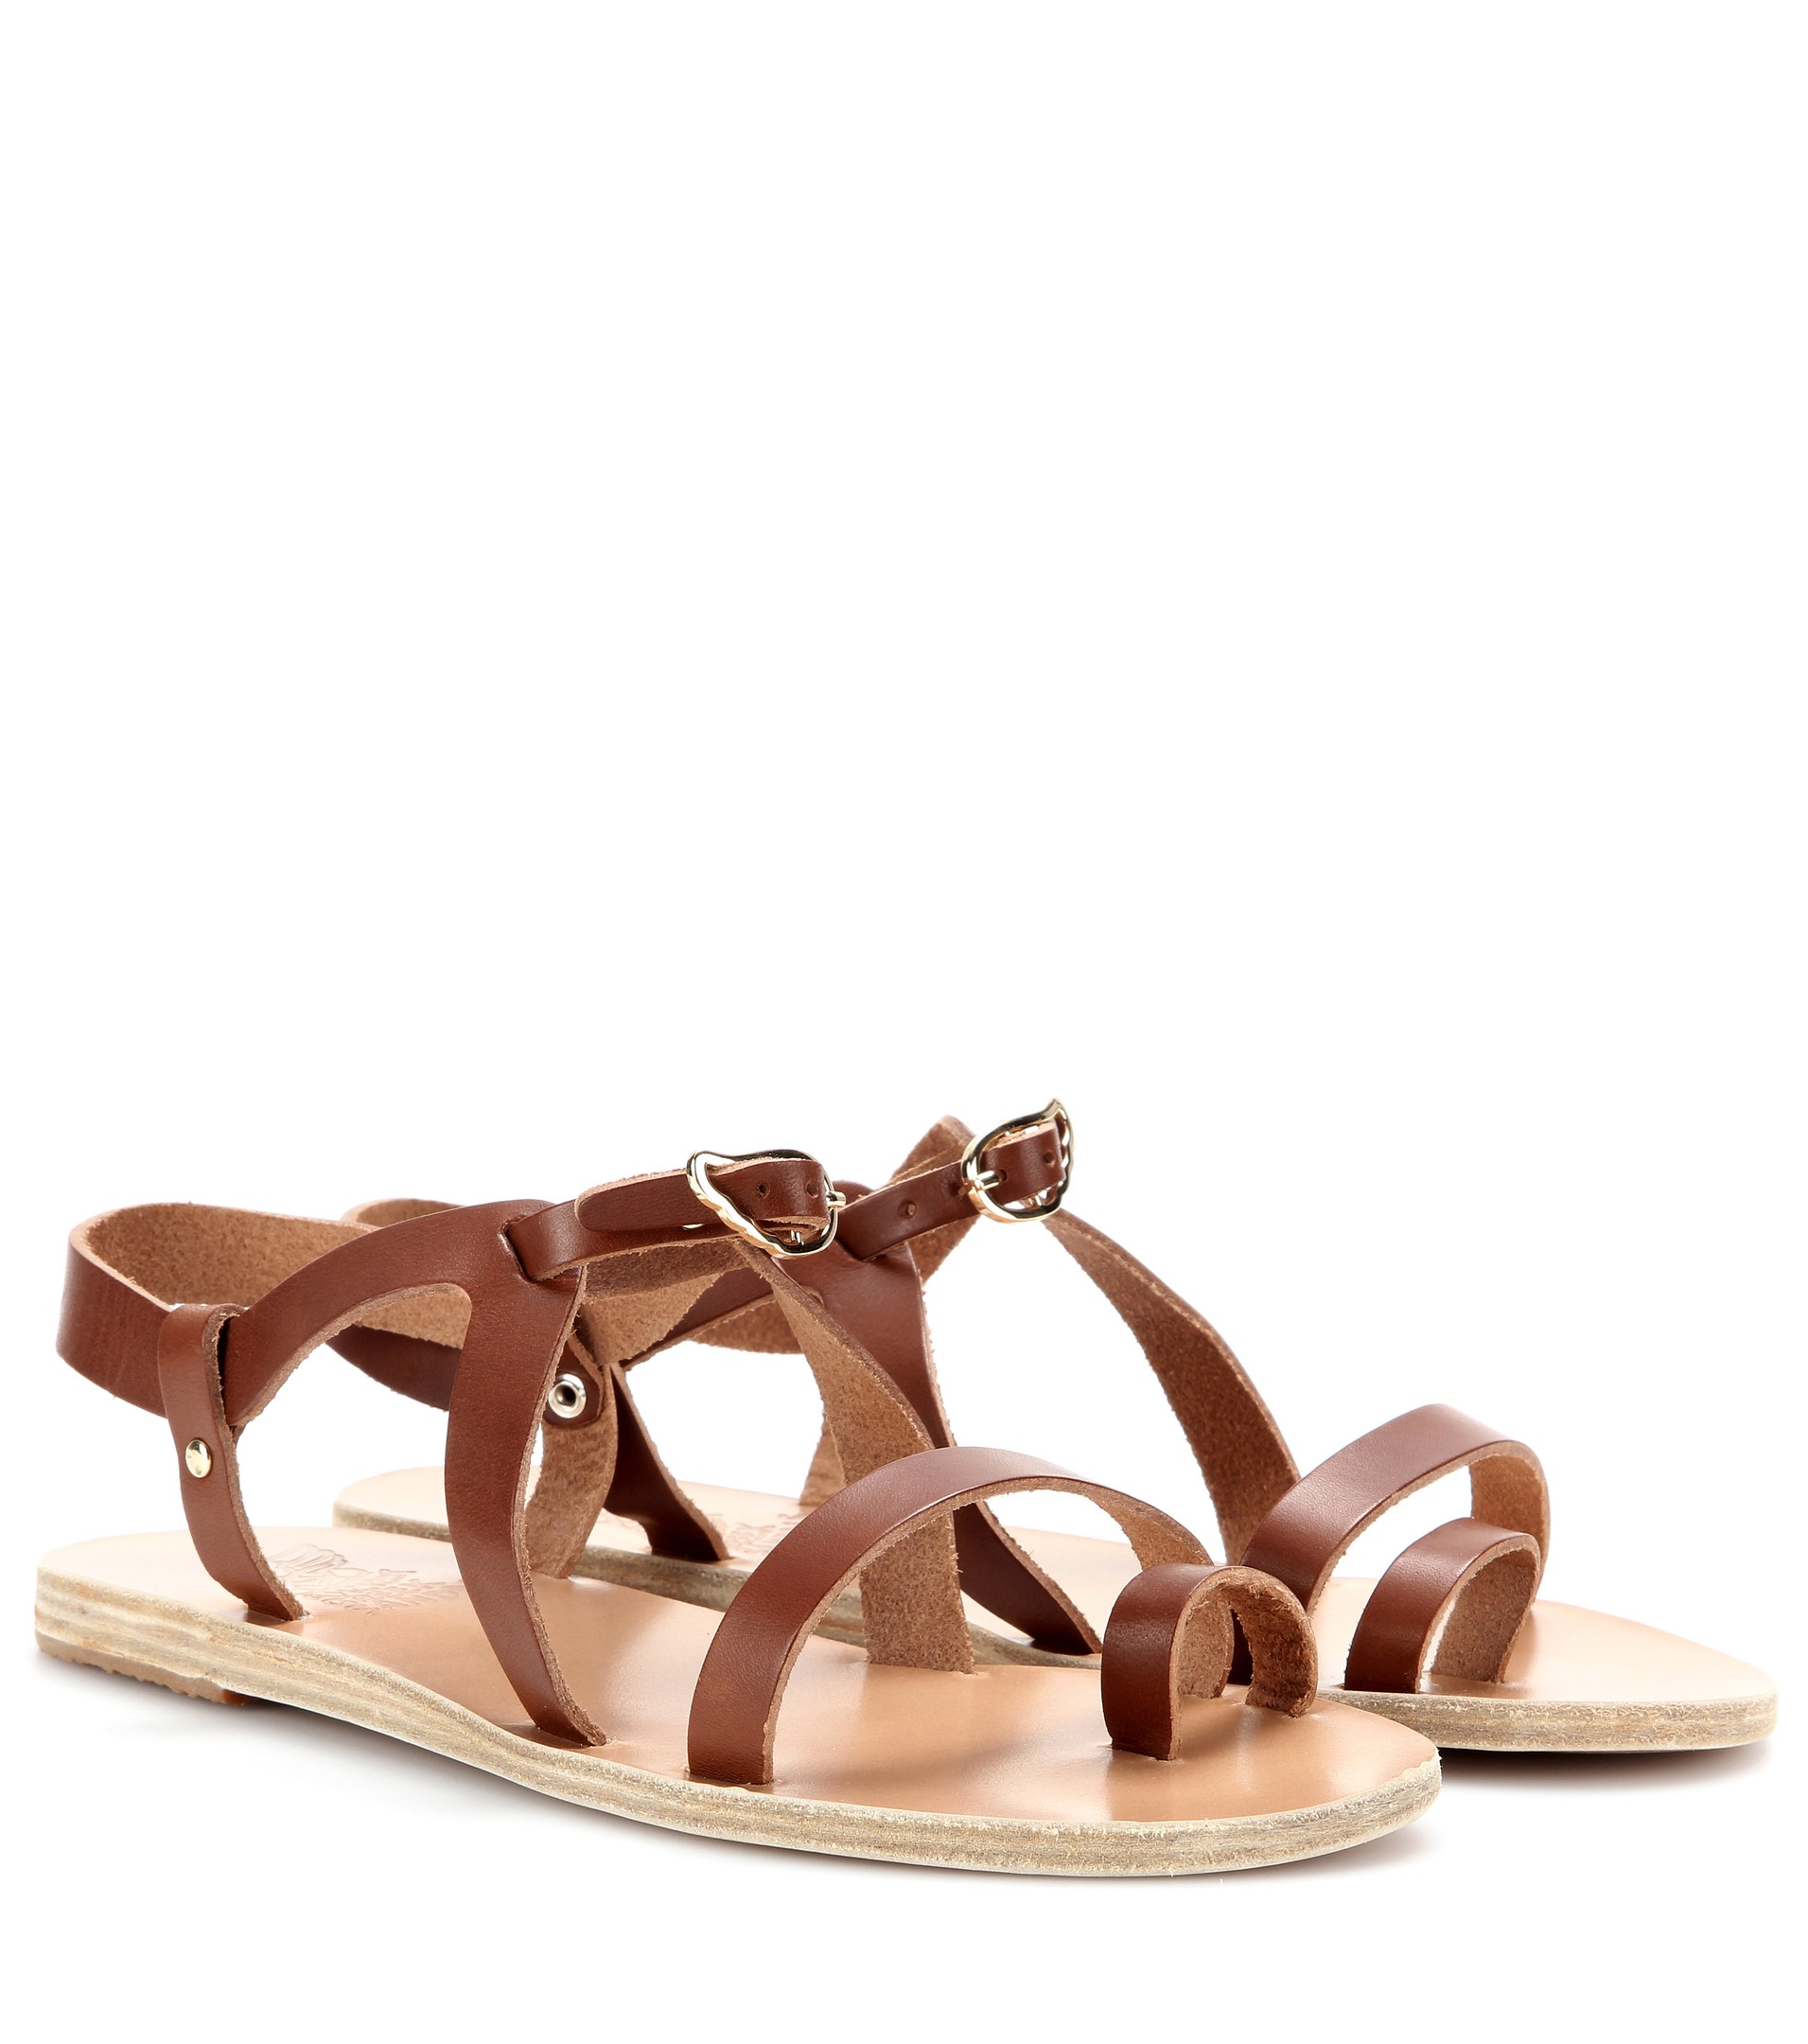 Looking For Cheap Price Nicekicks Naot Bonnie Quarter Strap Sandal(Women's) -Black Luster Leather Buy Cheap Top Quality Huge Surprise For Sale 2018 Cheap Online Ki7Q8XO1